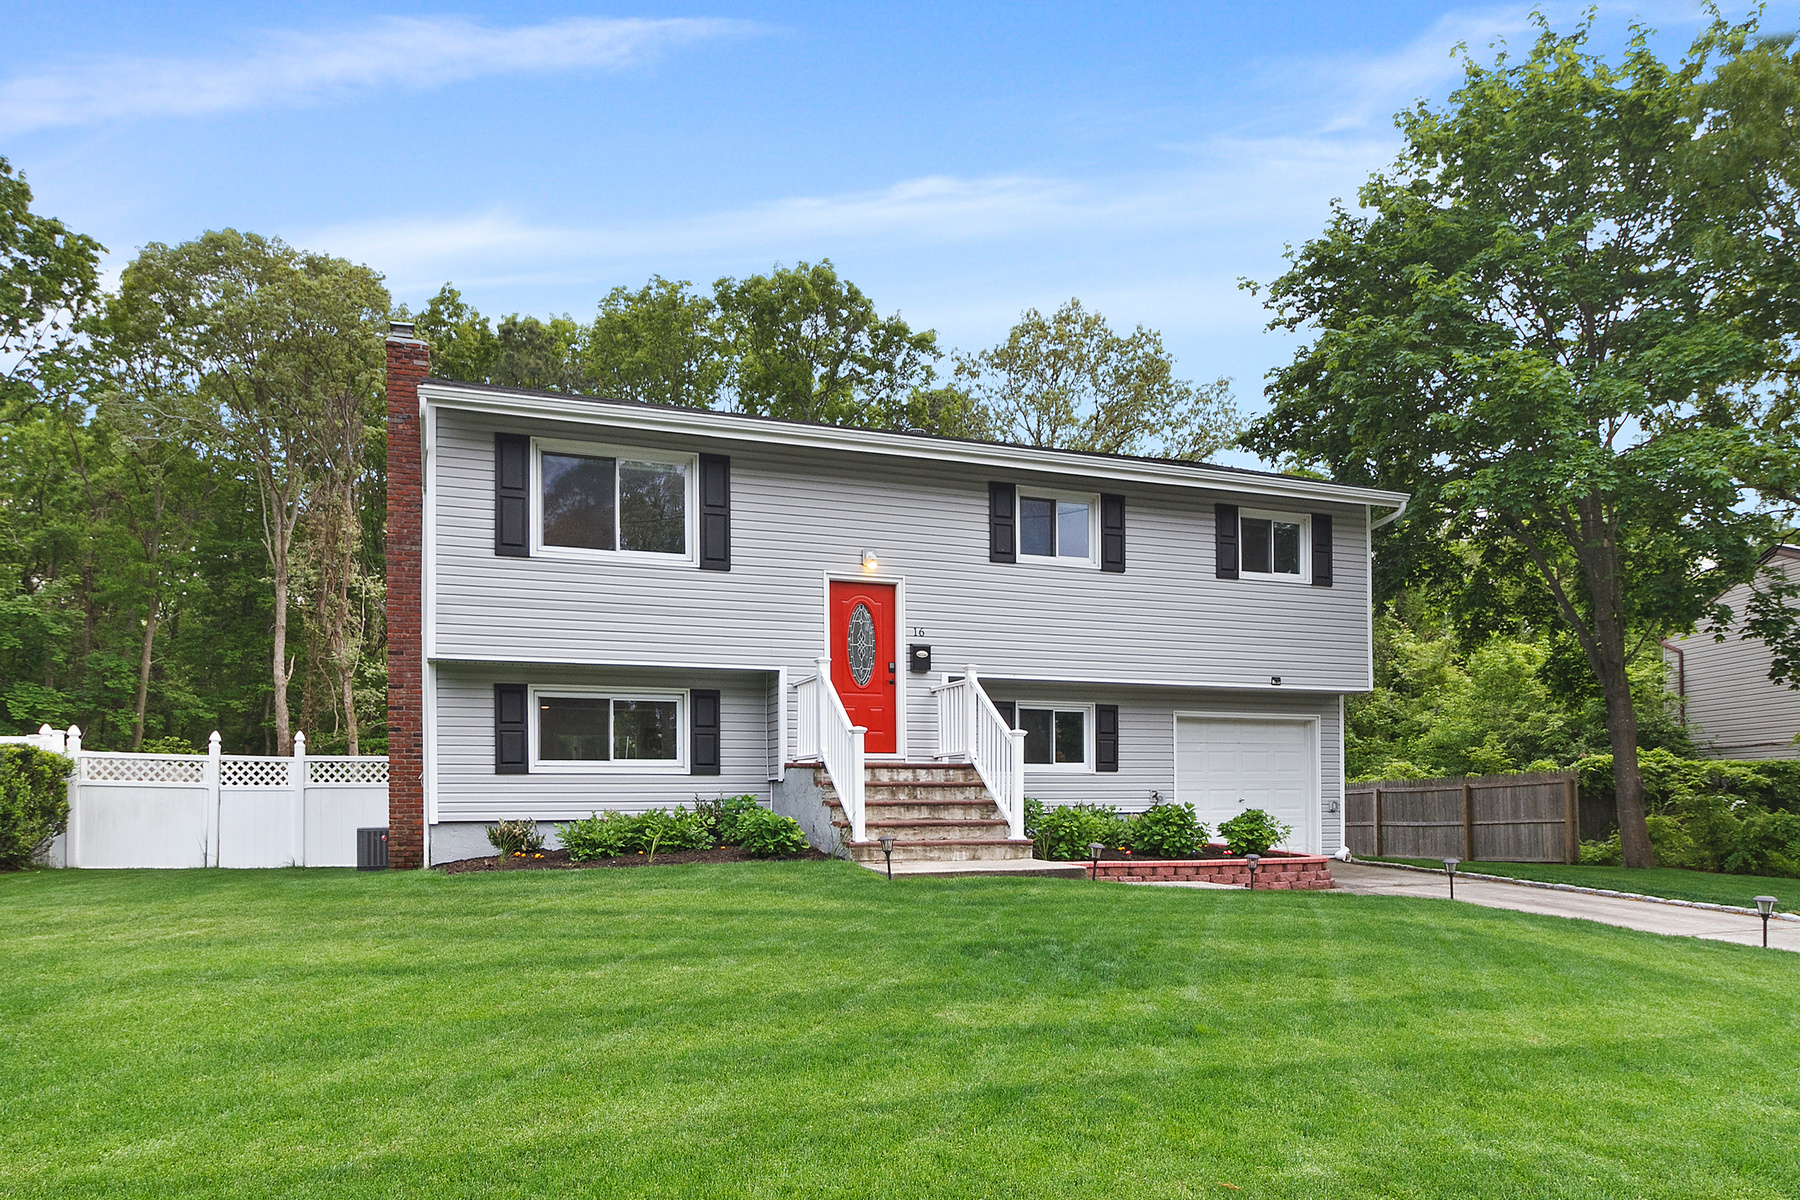 Single Family Homes for Active at E. Patchogue 16 Debbie Lane East Patchogue, New York 11772 United States